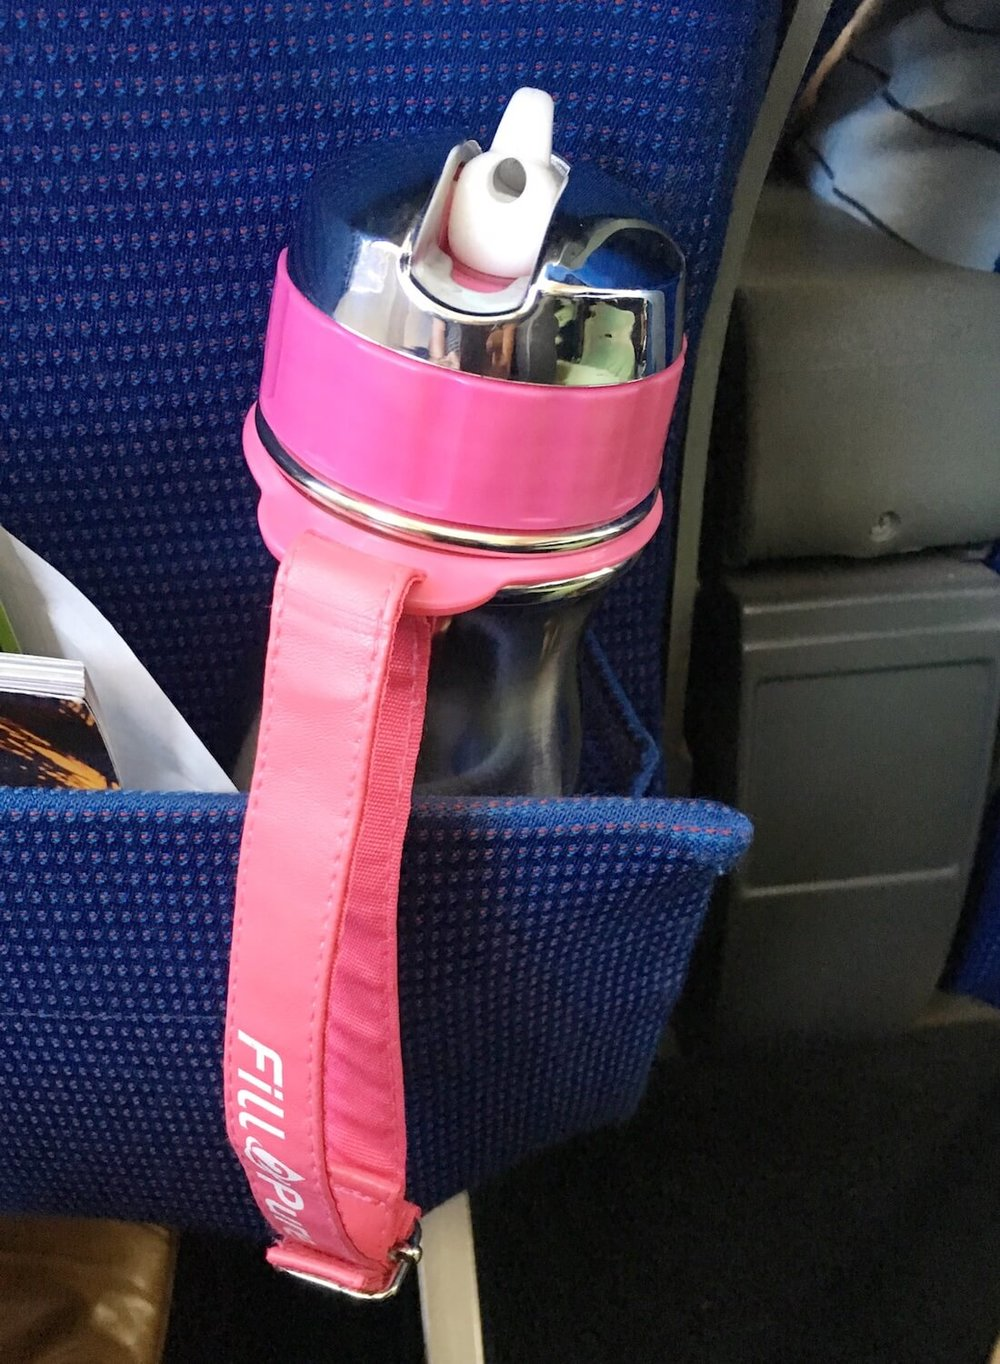 FITS PERFECTLY INTO THE SEAT BACK POCKET ON AN AEROPLANE